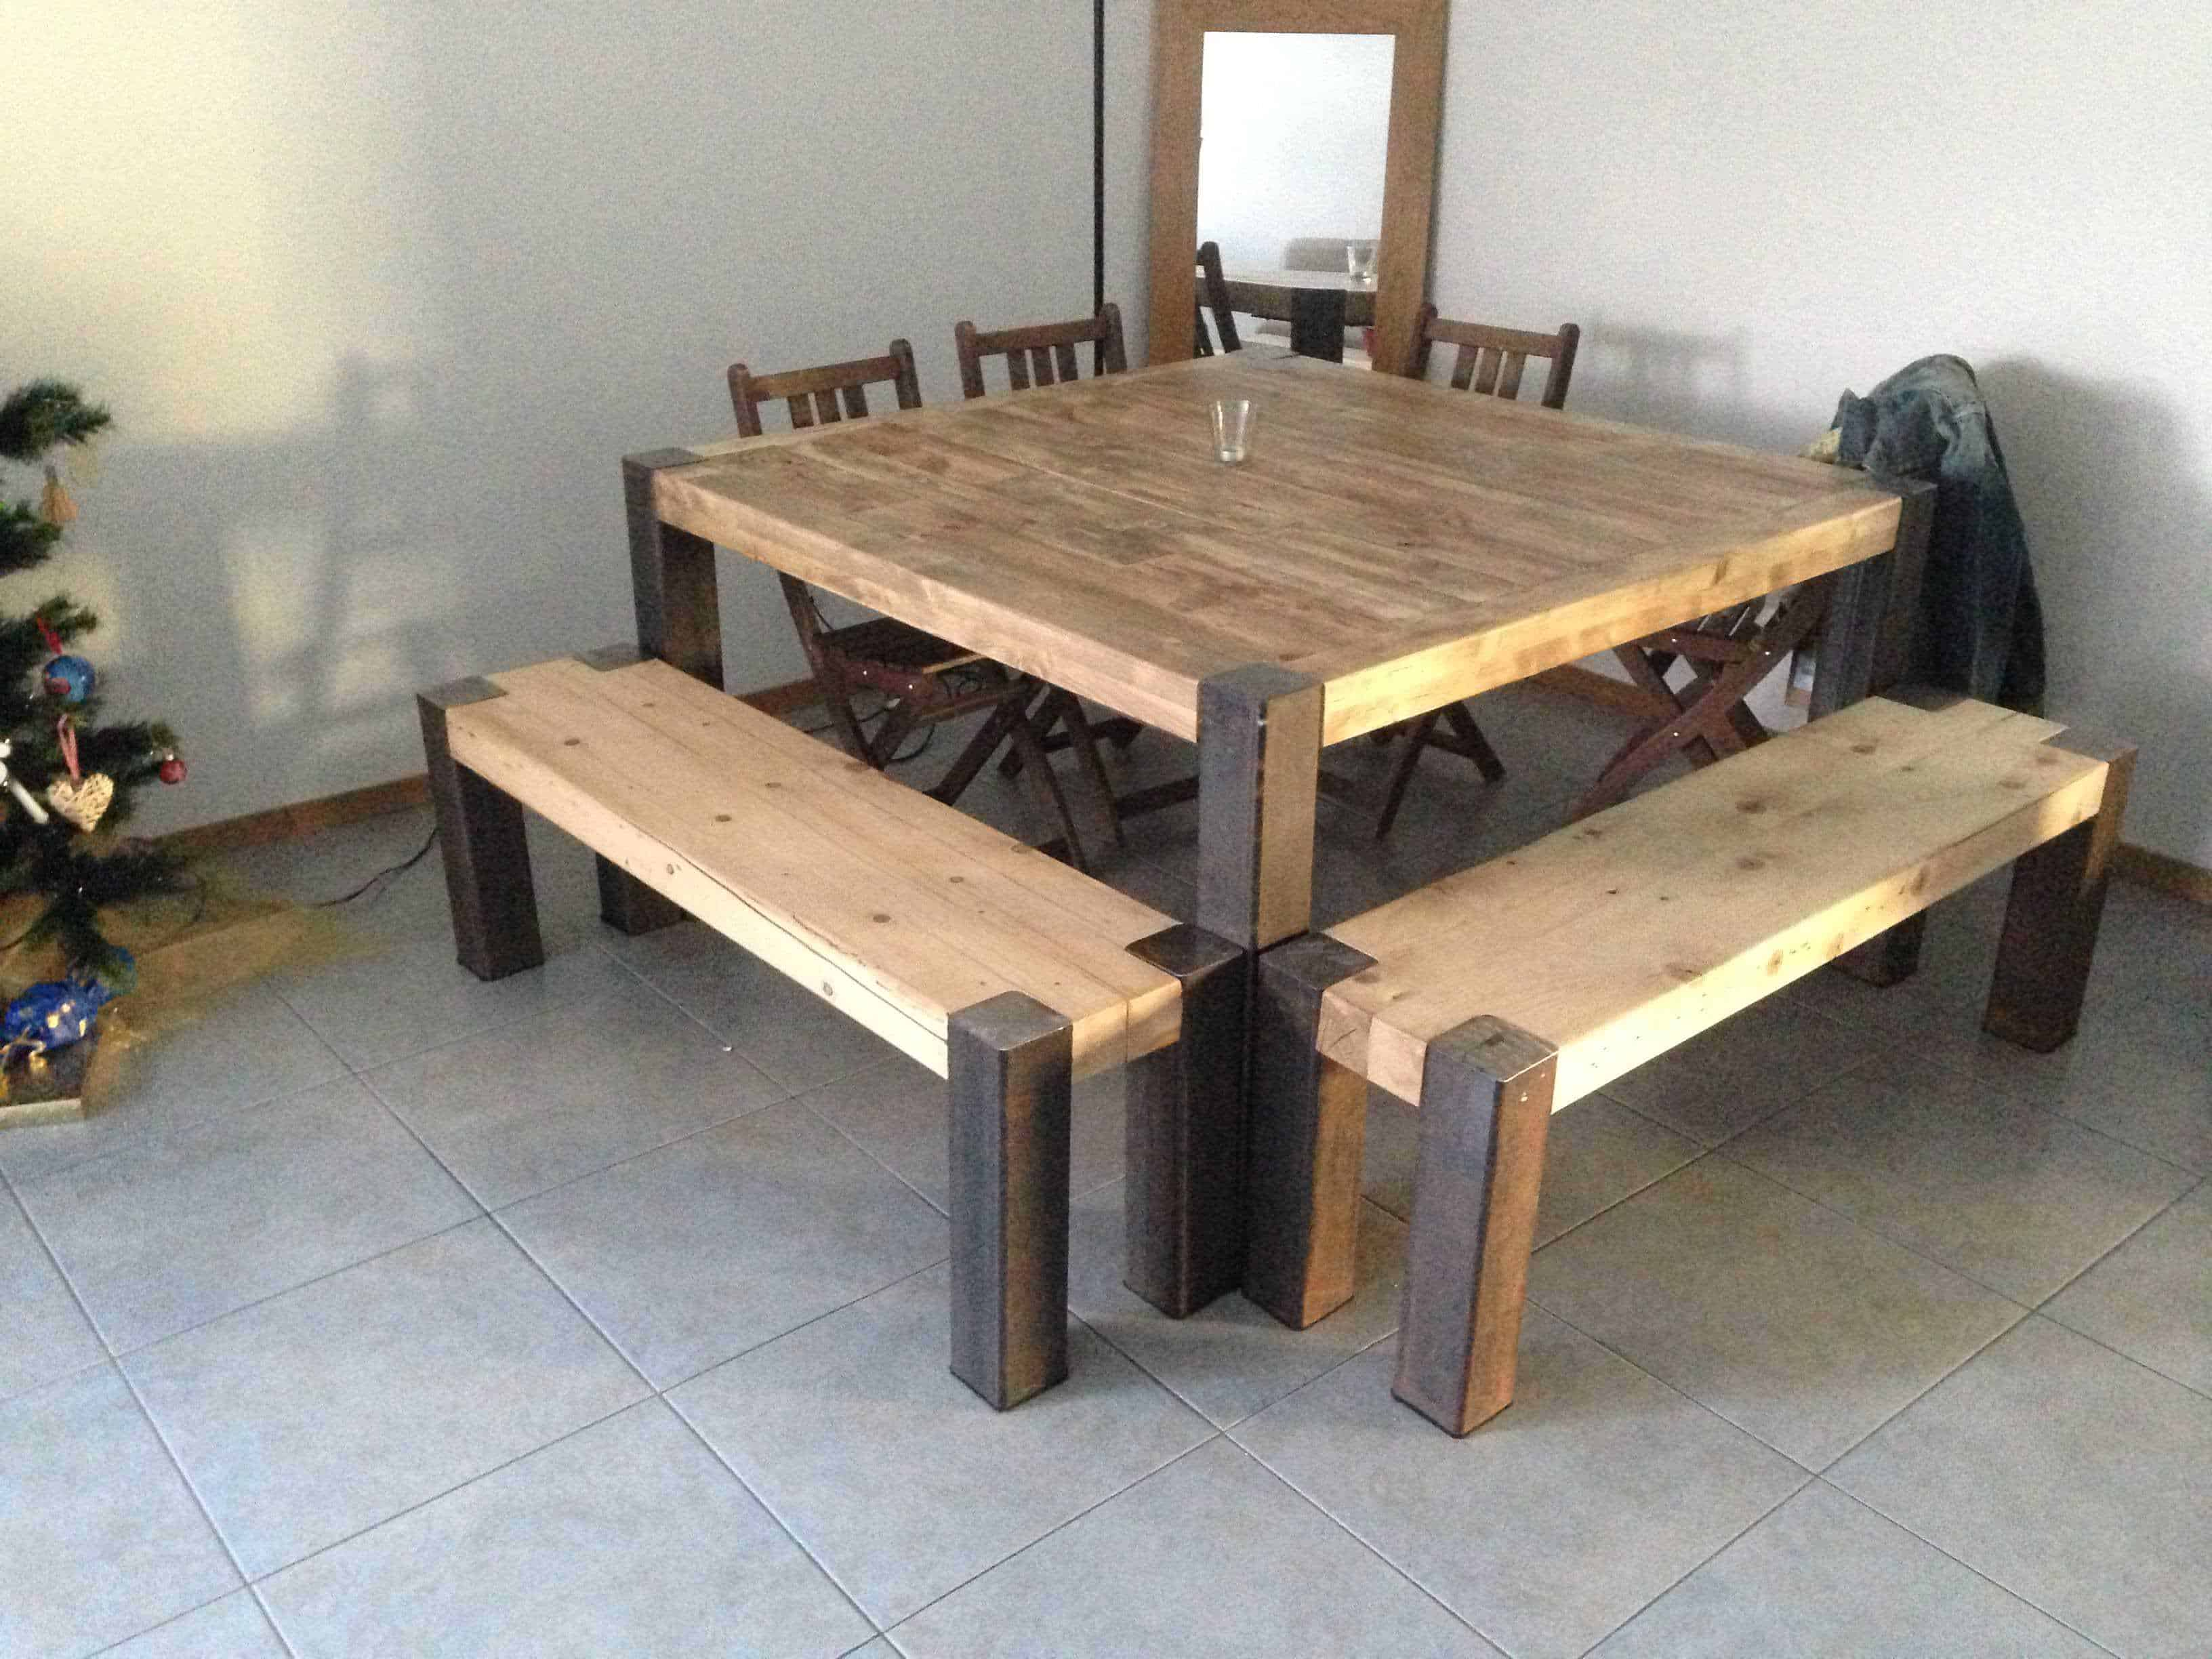 table en lattes de palettes upcycled pallet planks table 1001 pallets. Black Bedroom Furniture Sets. Home Design Ideas